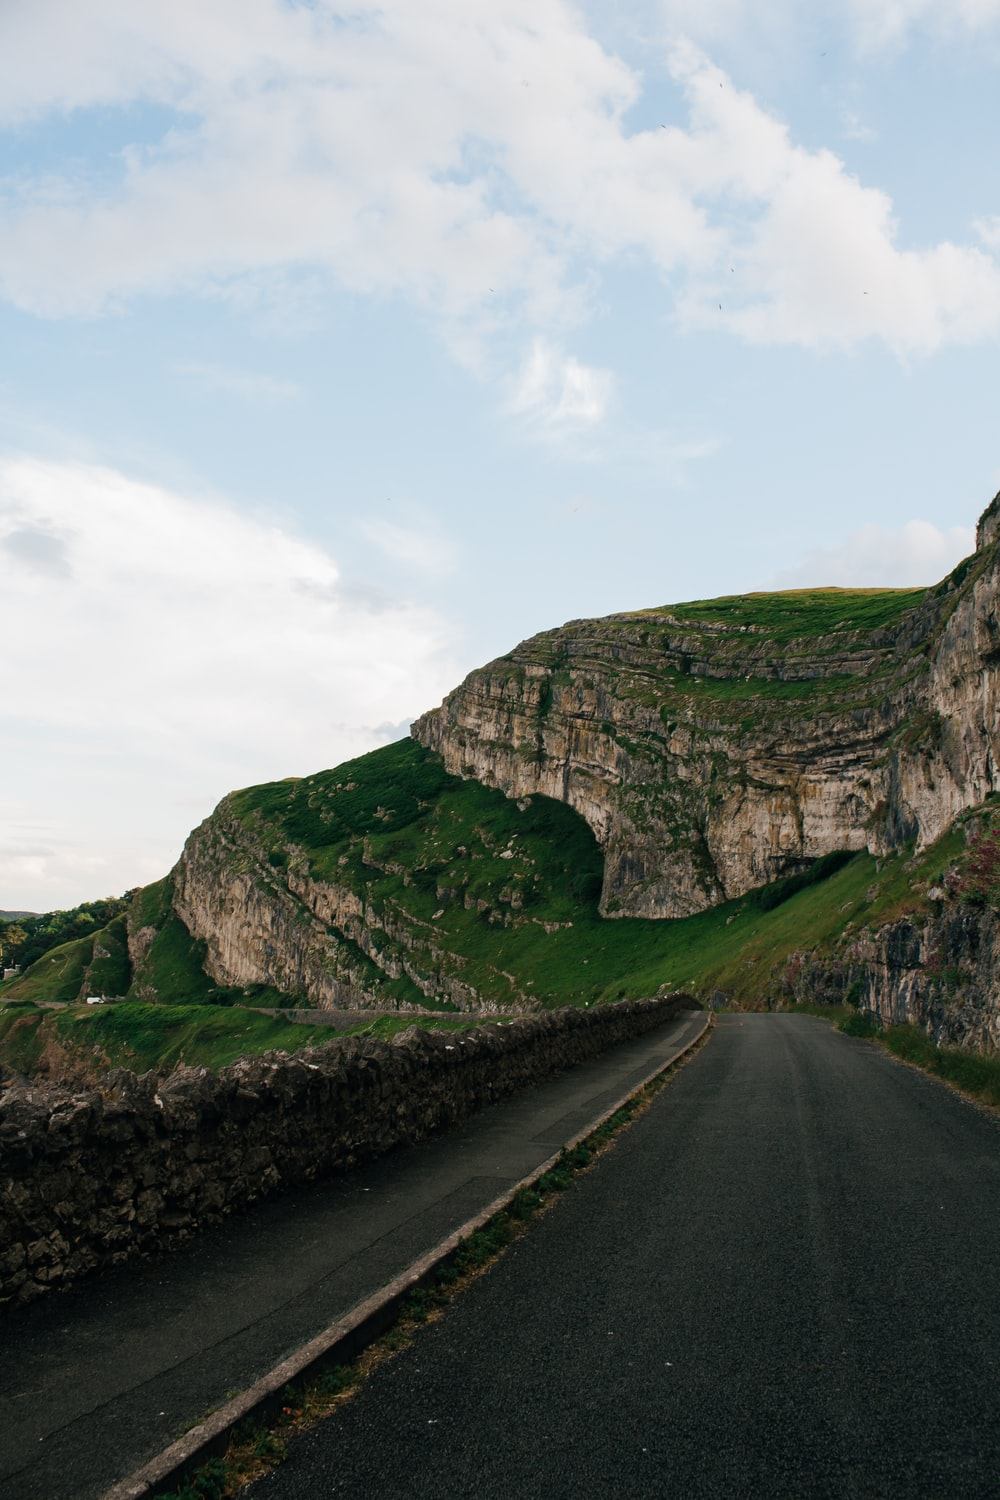 gray asphalt road beside green and brown mountain under white cloudy sky during daytime